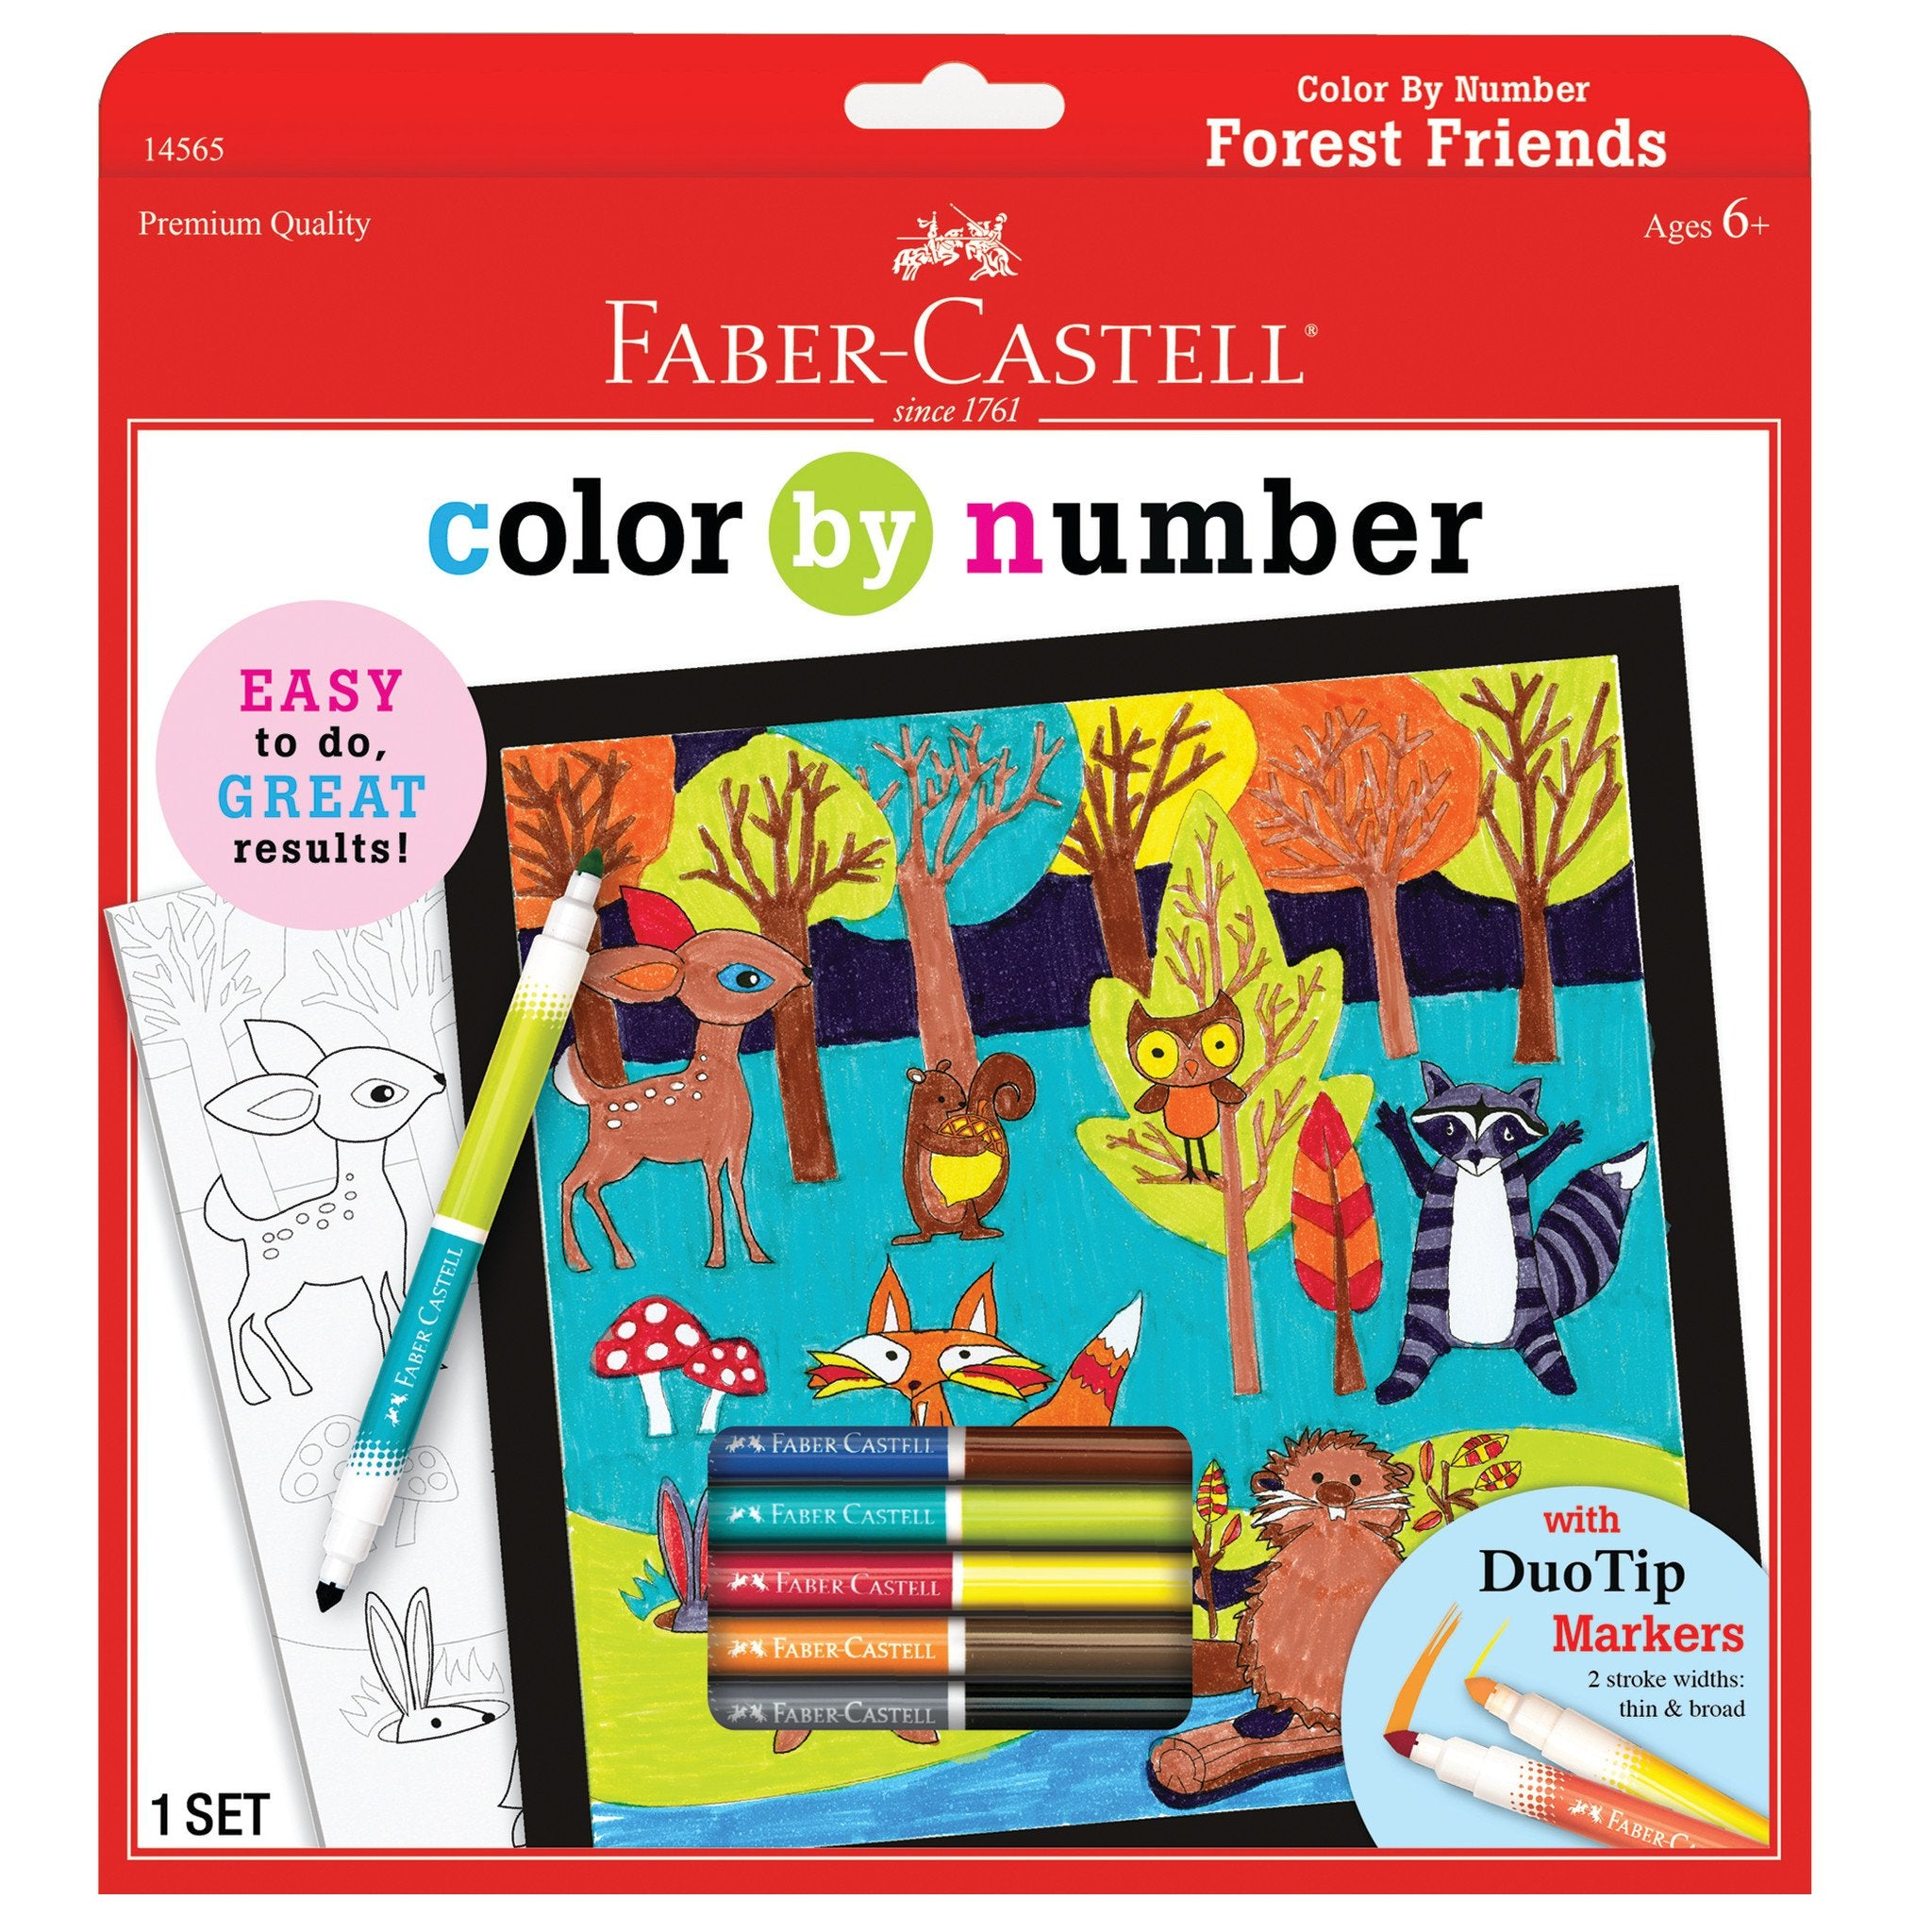 Color By Number - Forest Friends